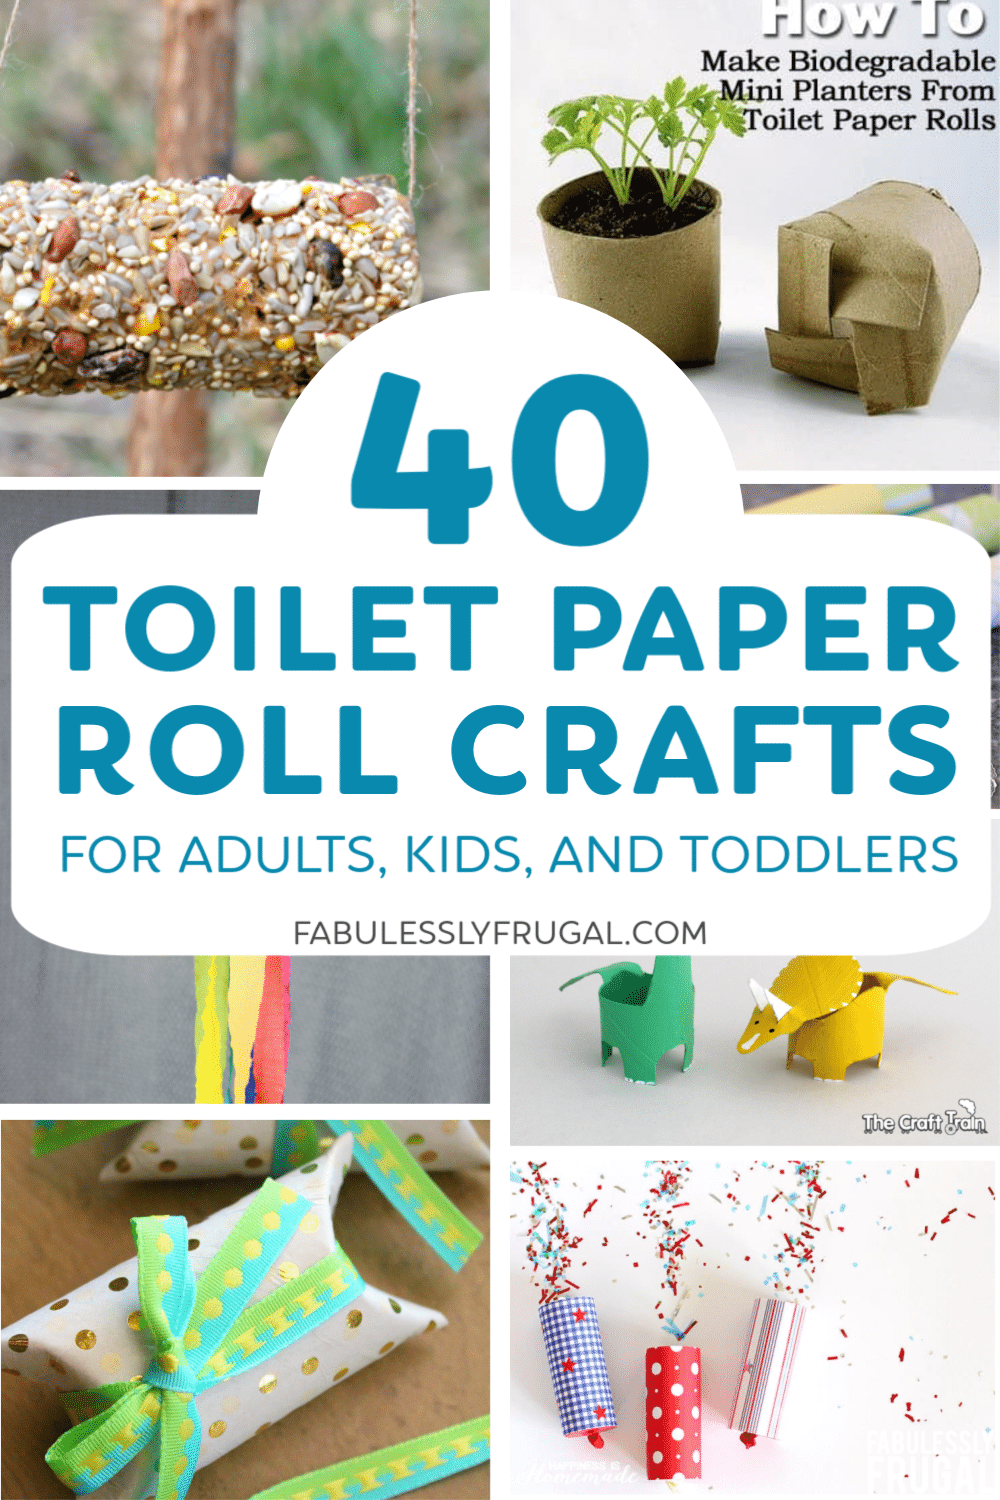 11+ Toilet paper roll crafts for adults information